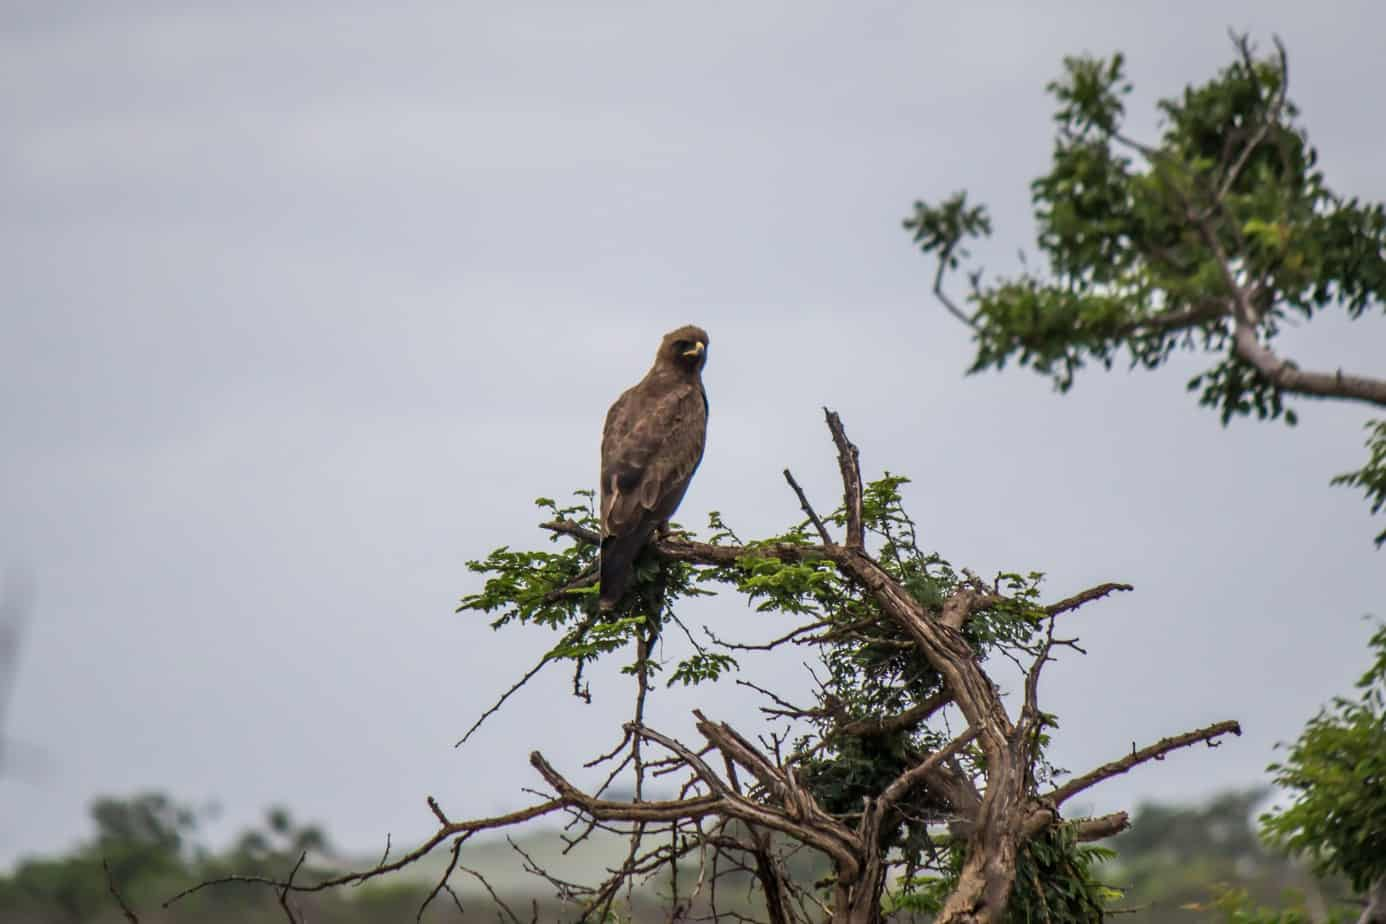 Wahlberg's Eagle3